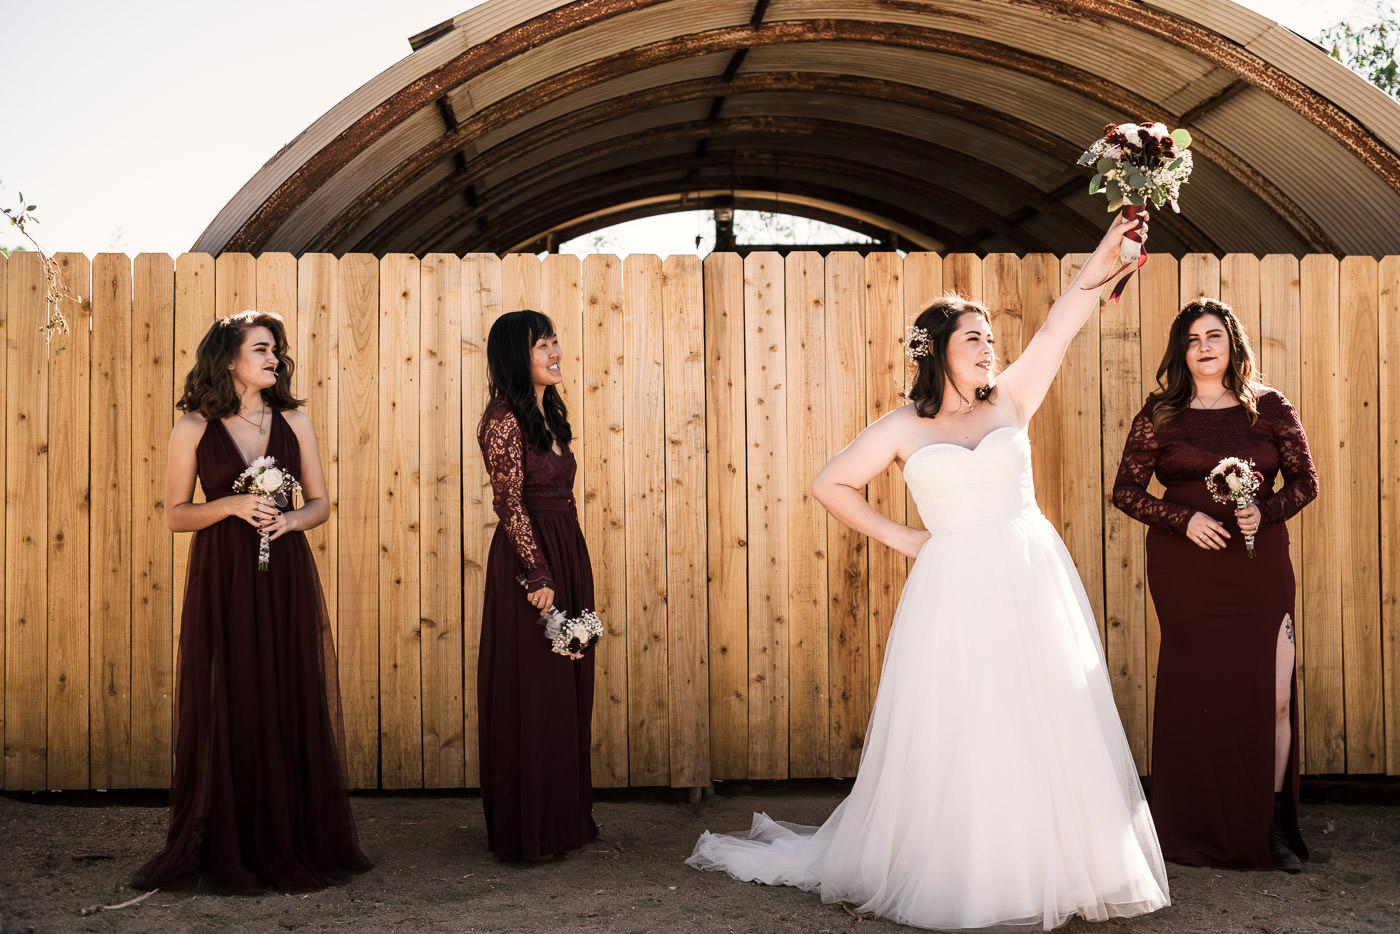 Bride poses with her bridesmaids in front of a wooden wall in Temecula California.